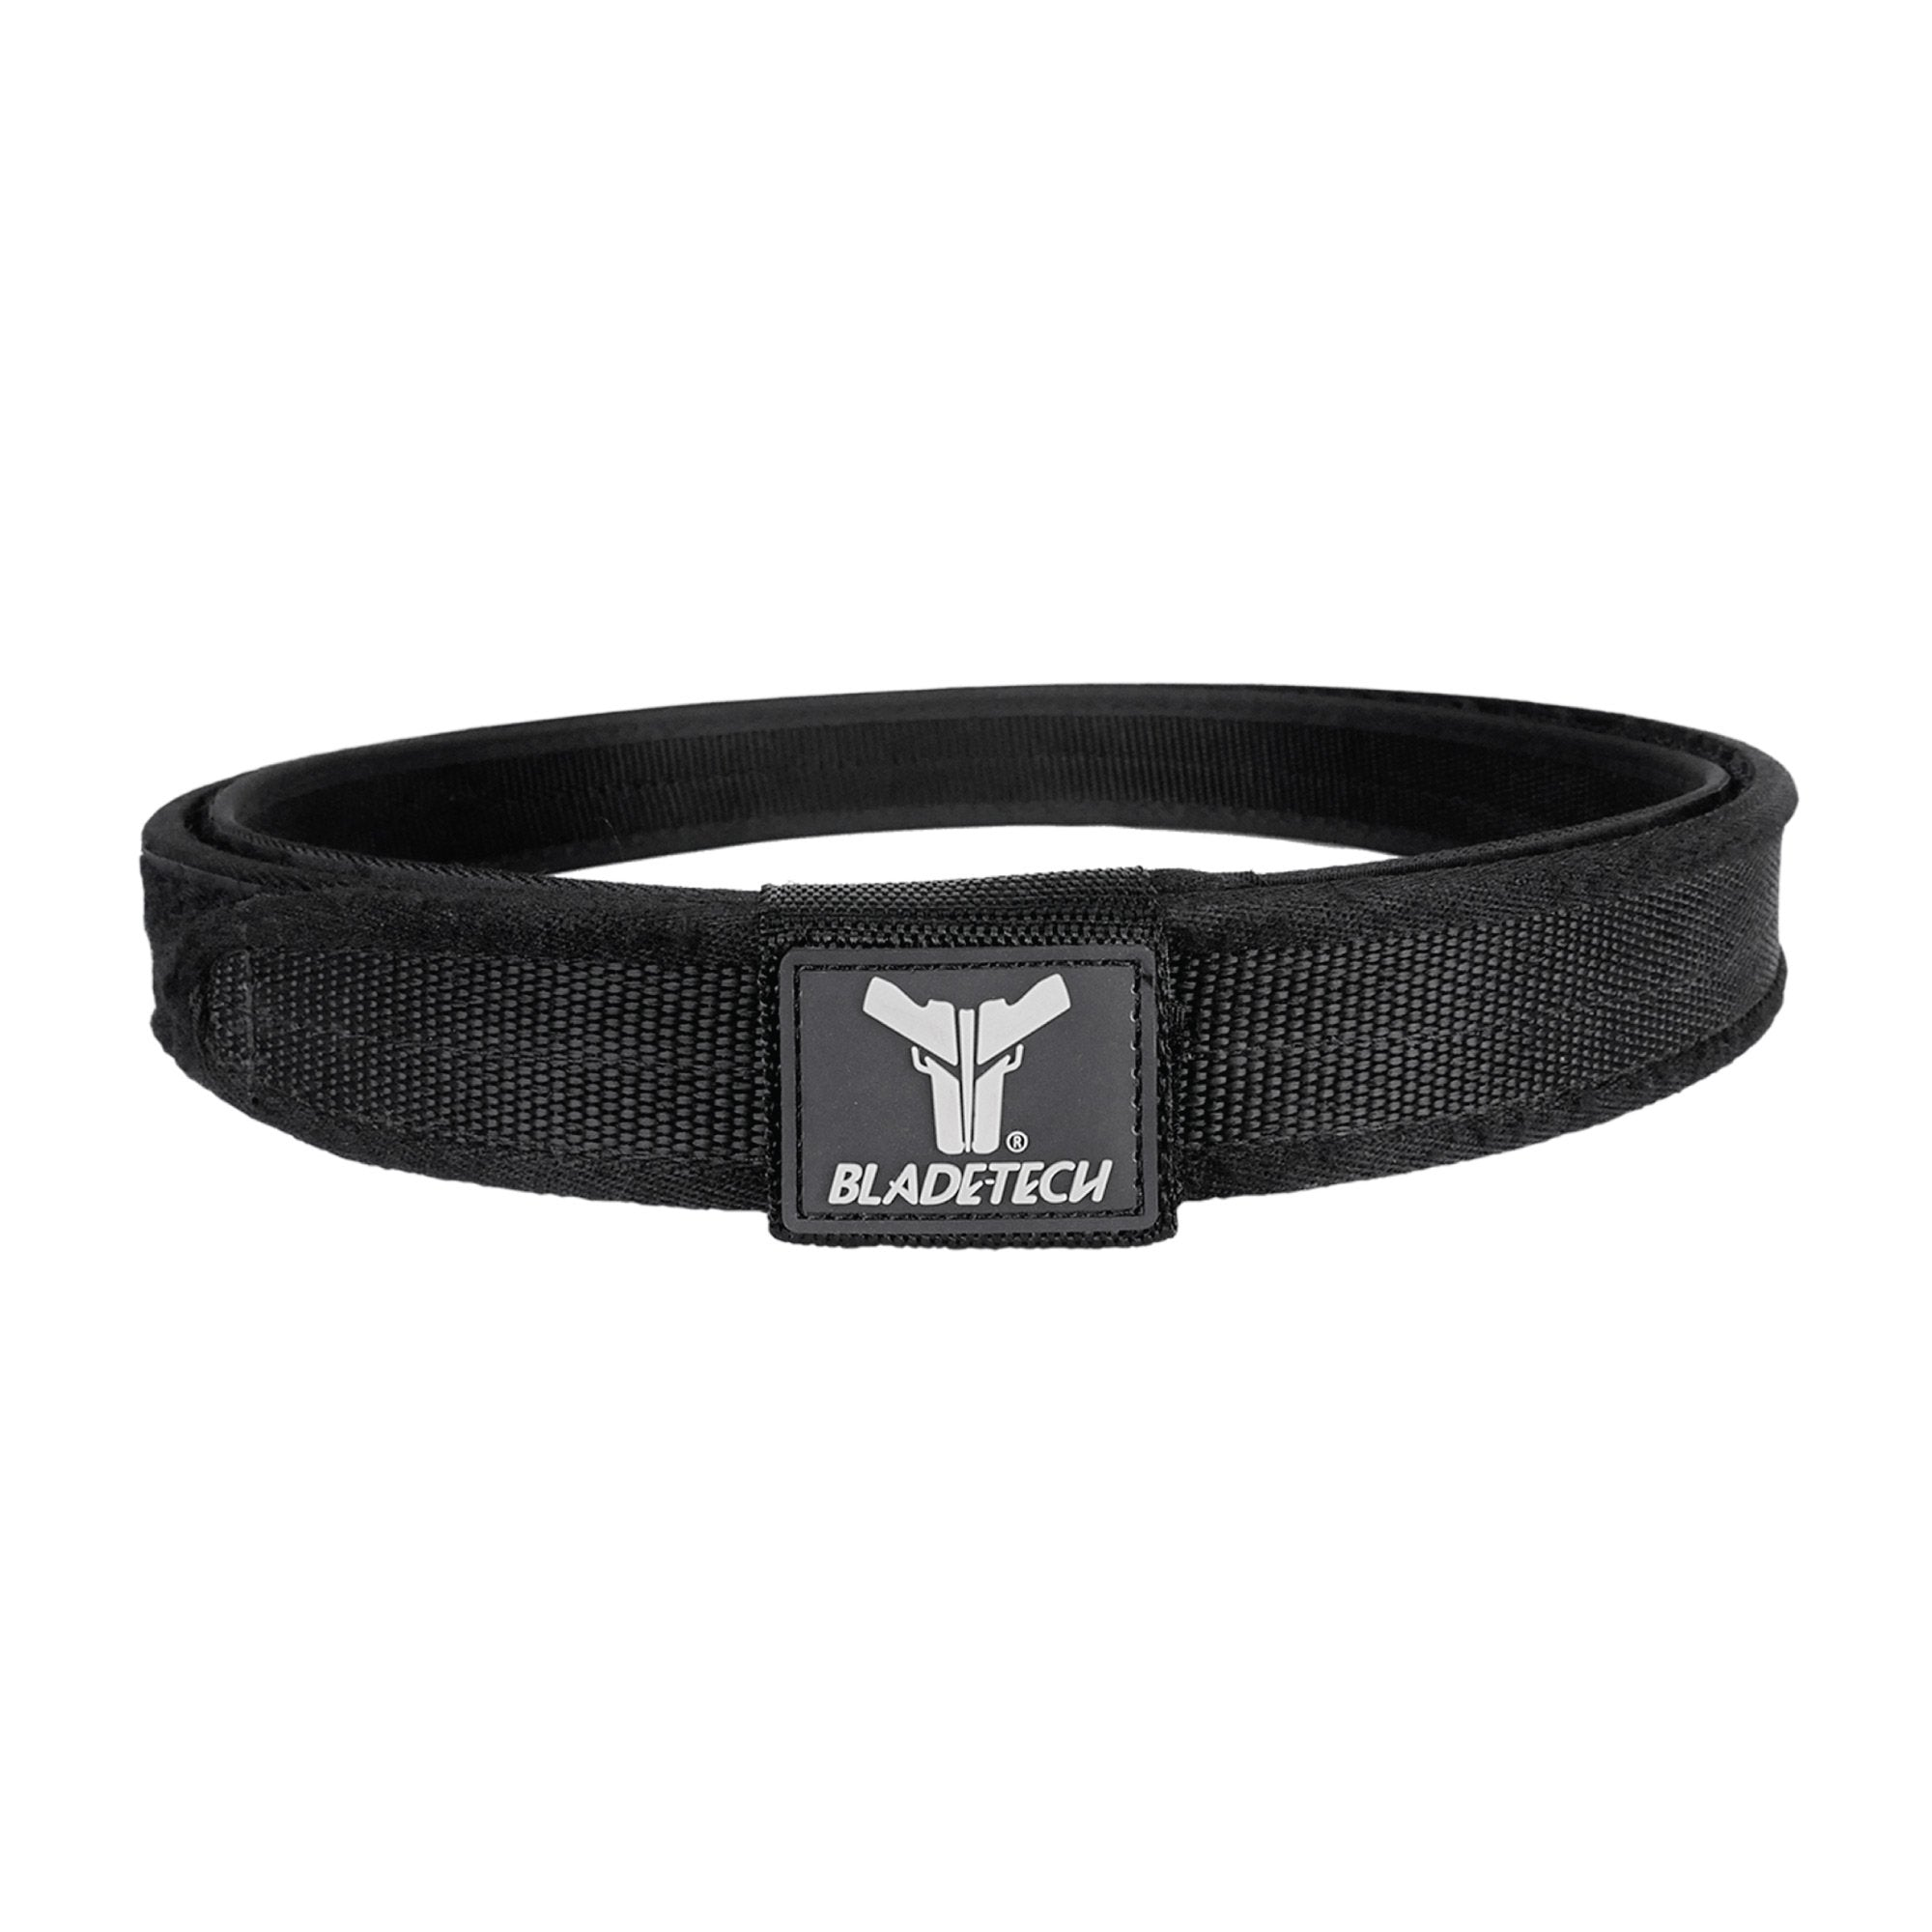 Blade-Tech Velocity Competition Speed Belt Tactical Gear Australia Supplier Distributor Dealer